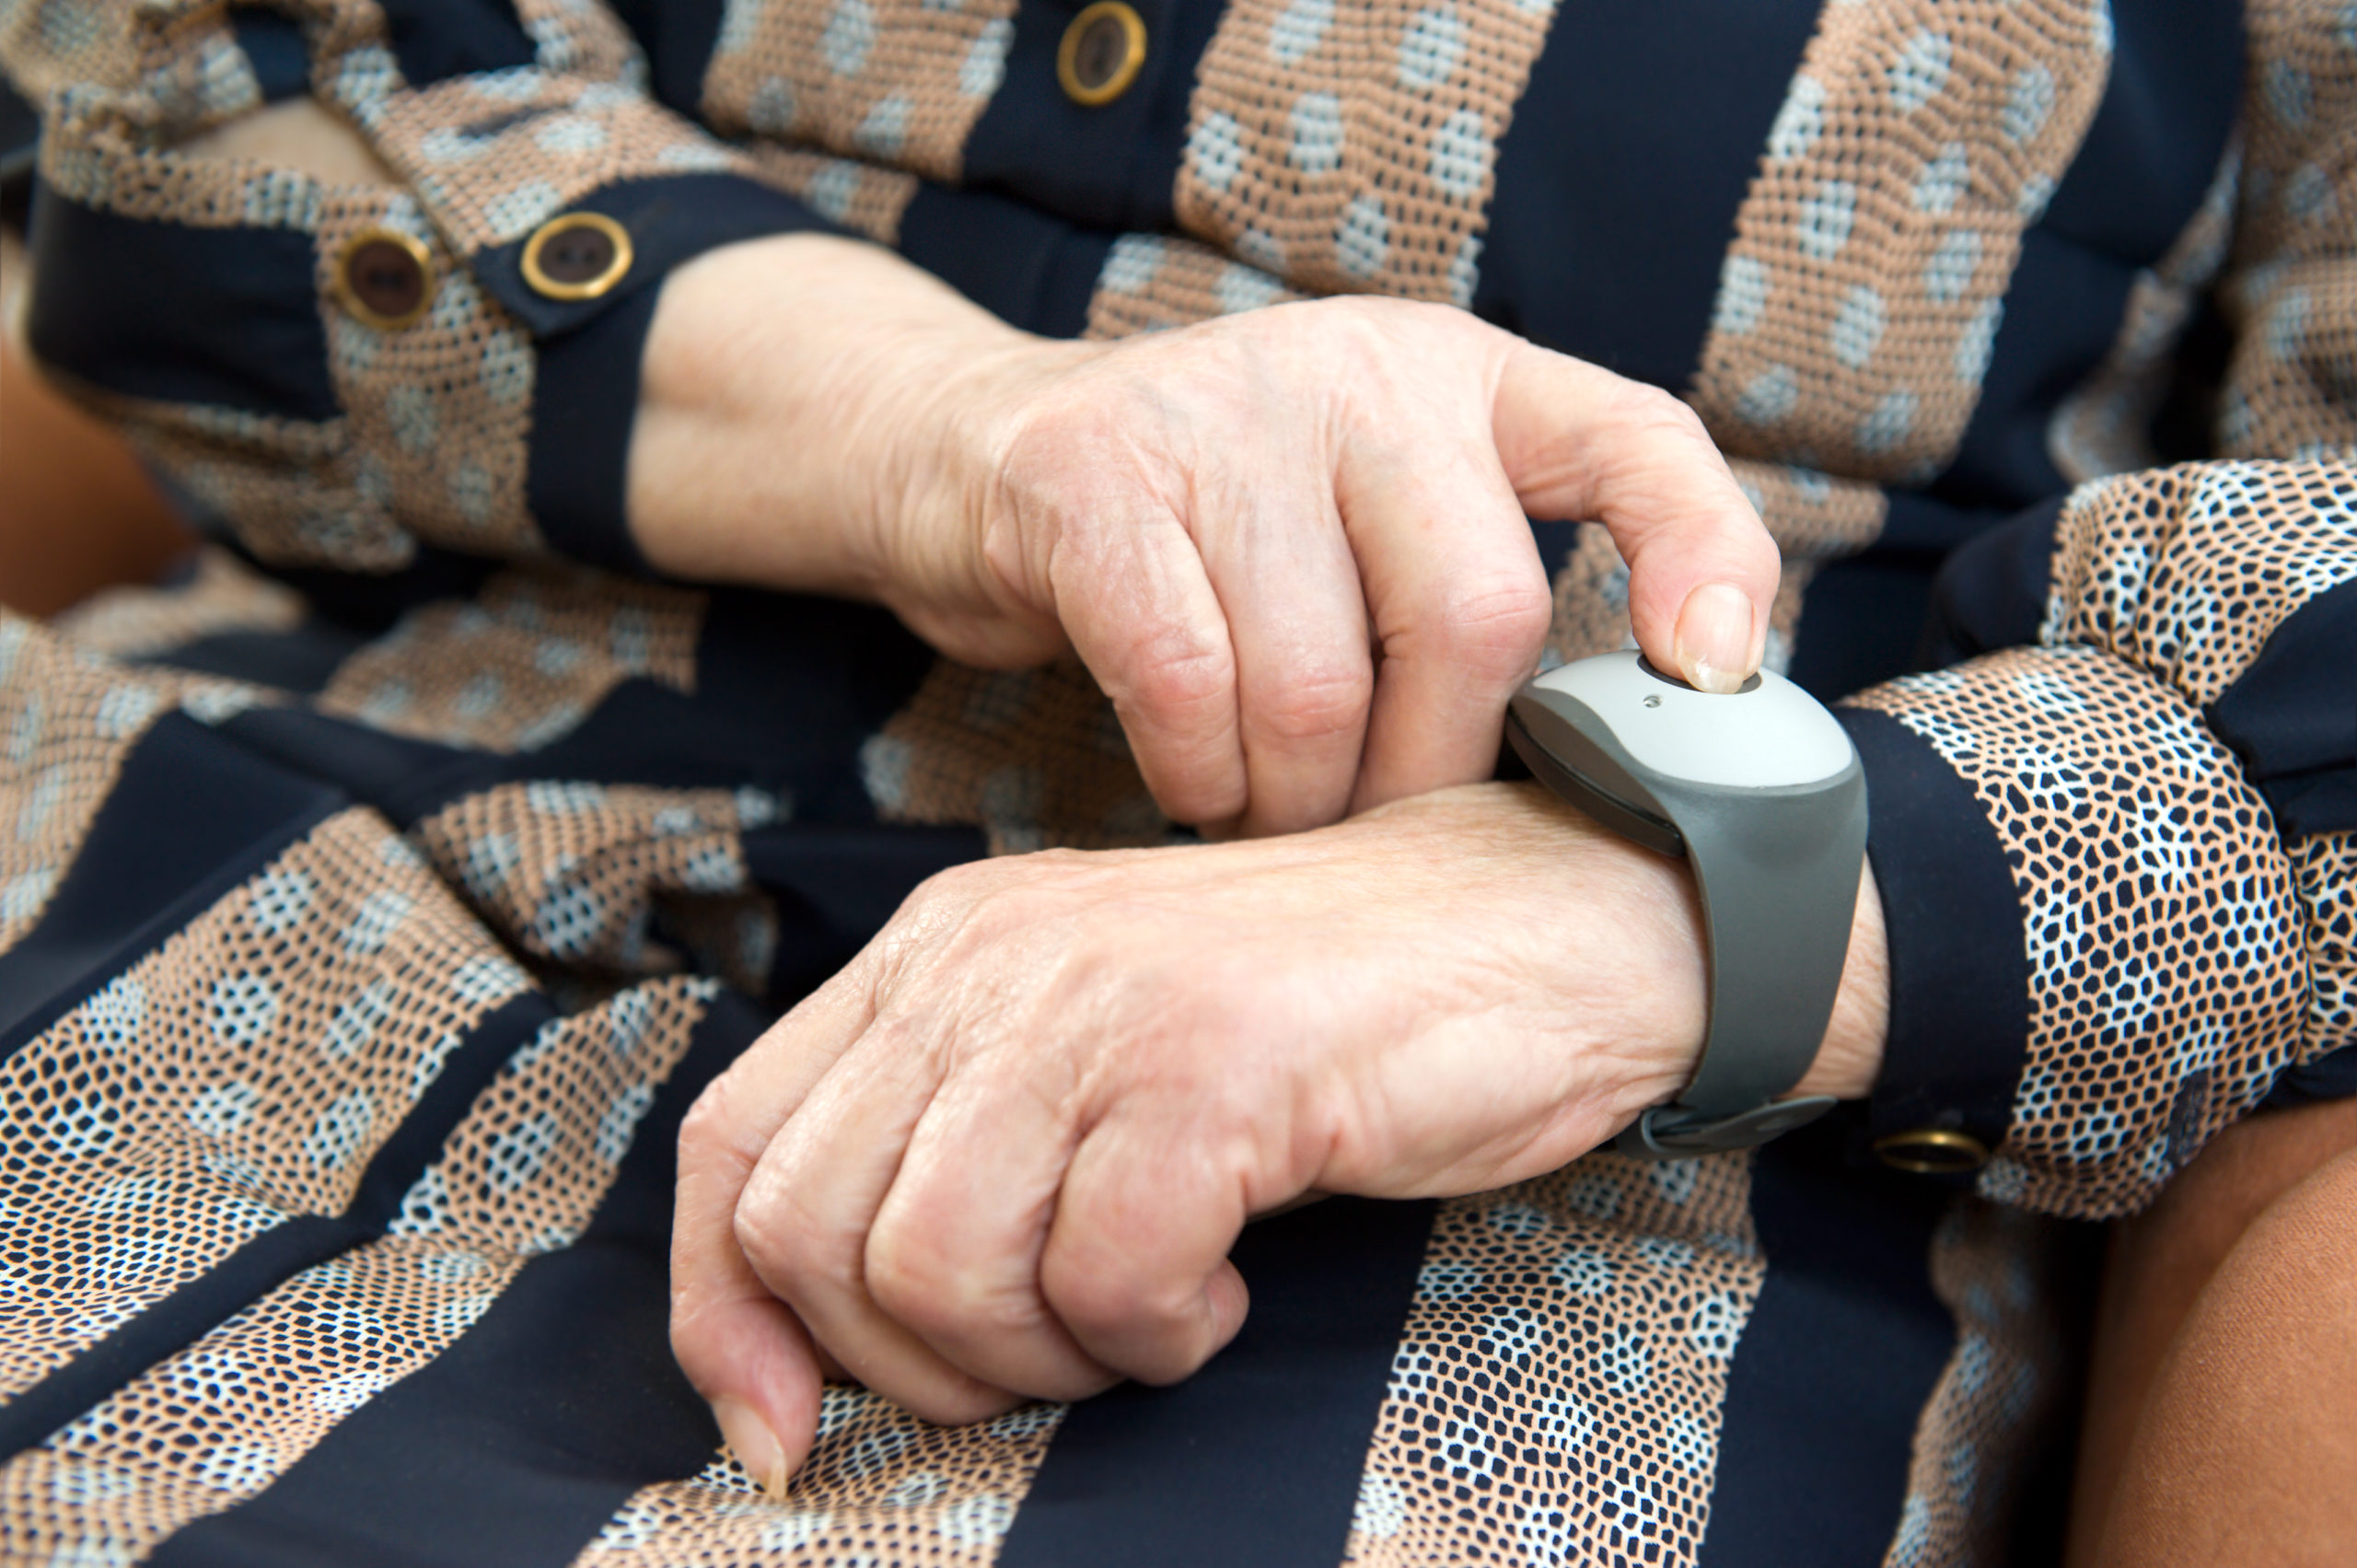 a senior woman pushing the emergency button of the device for professional help